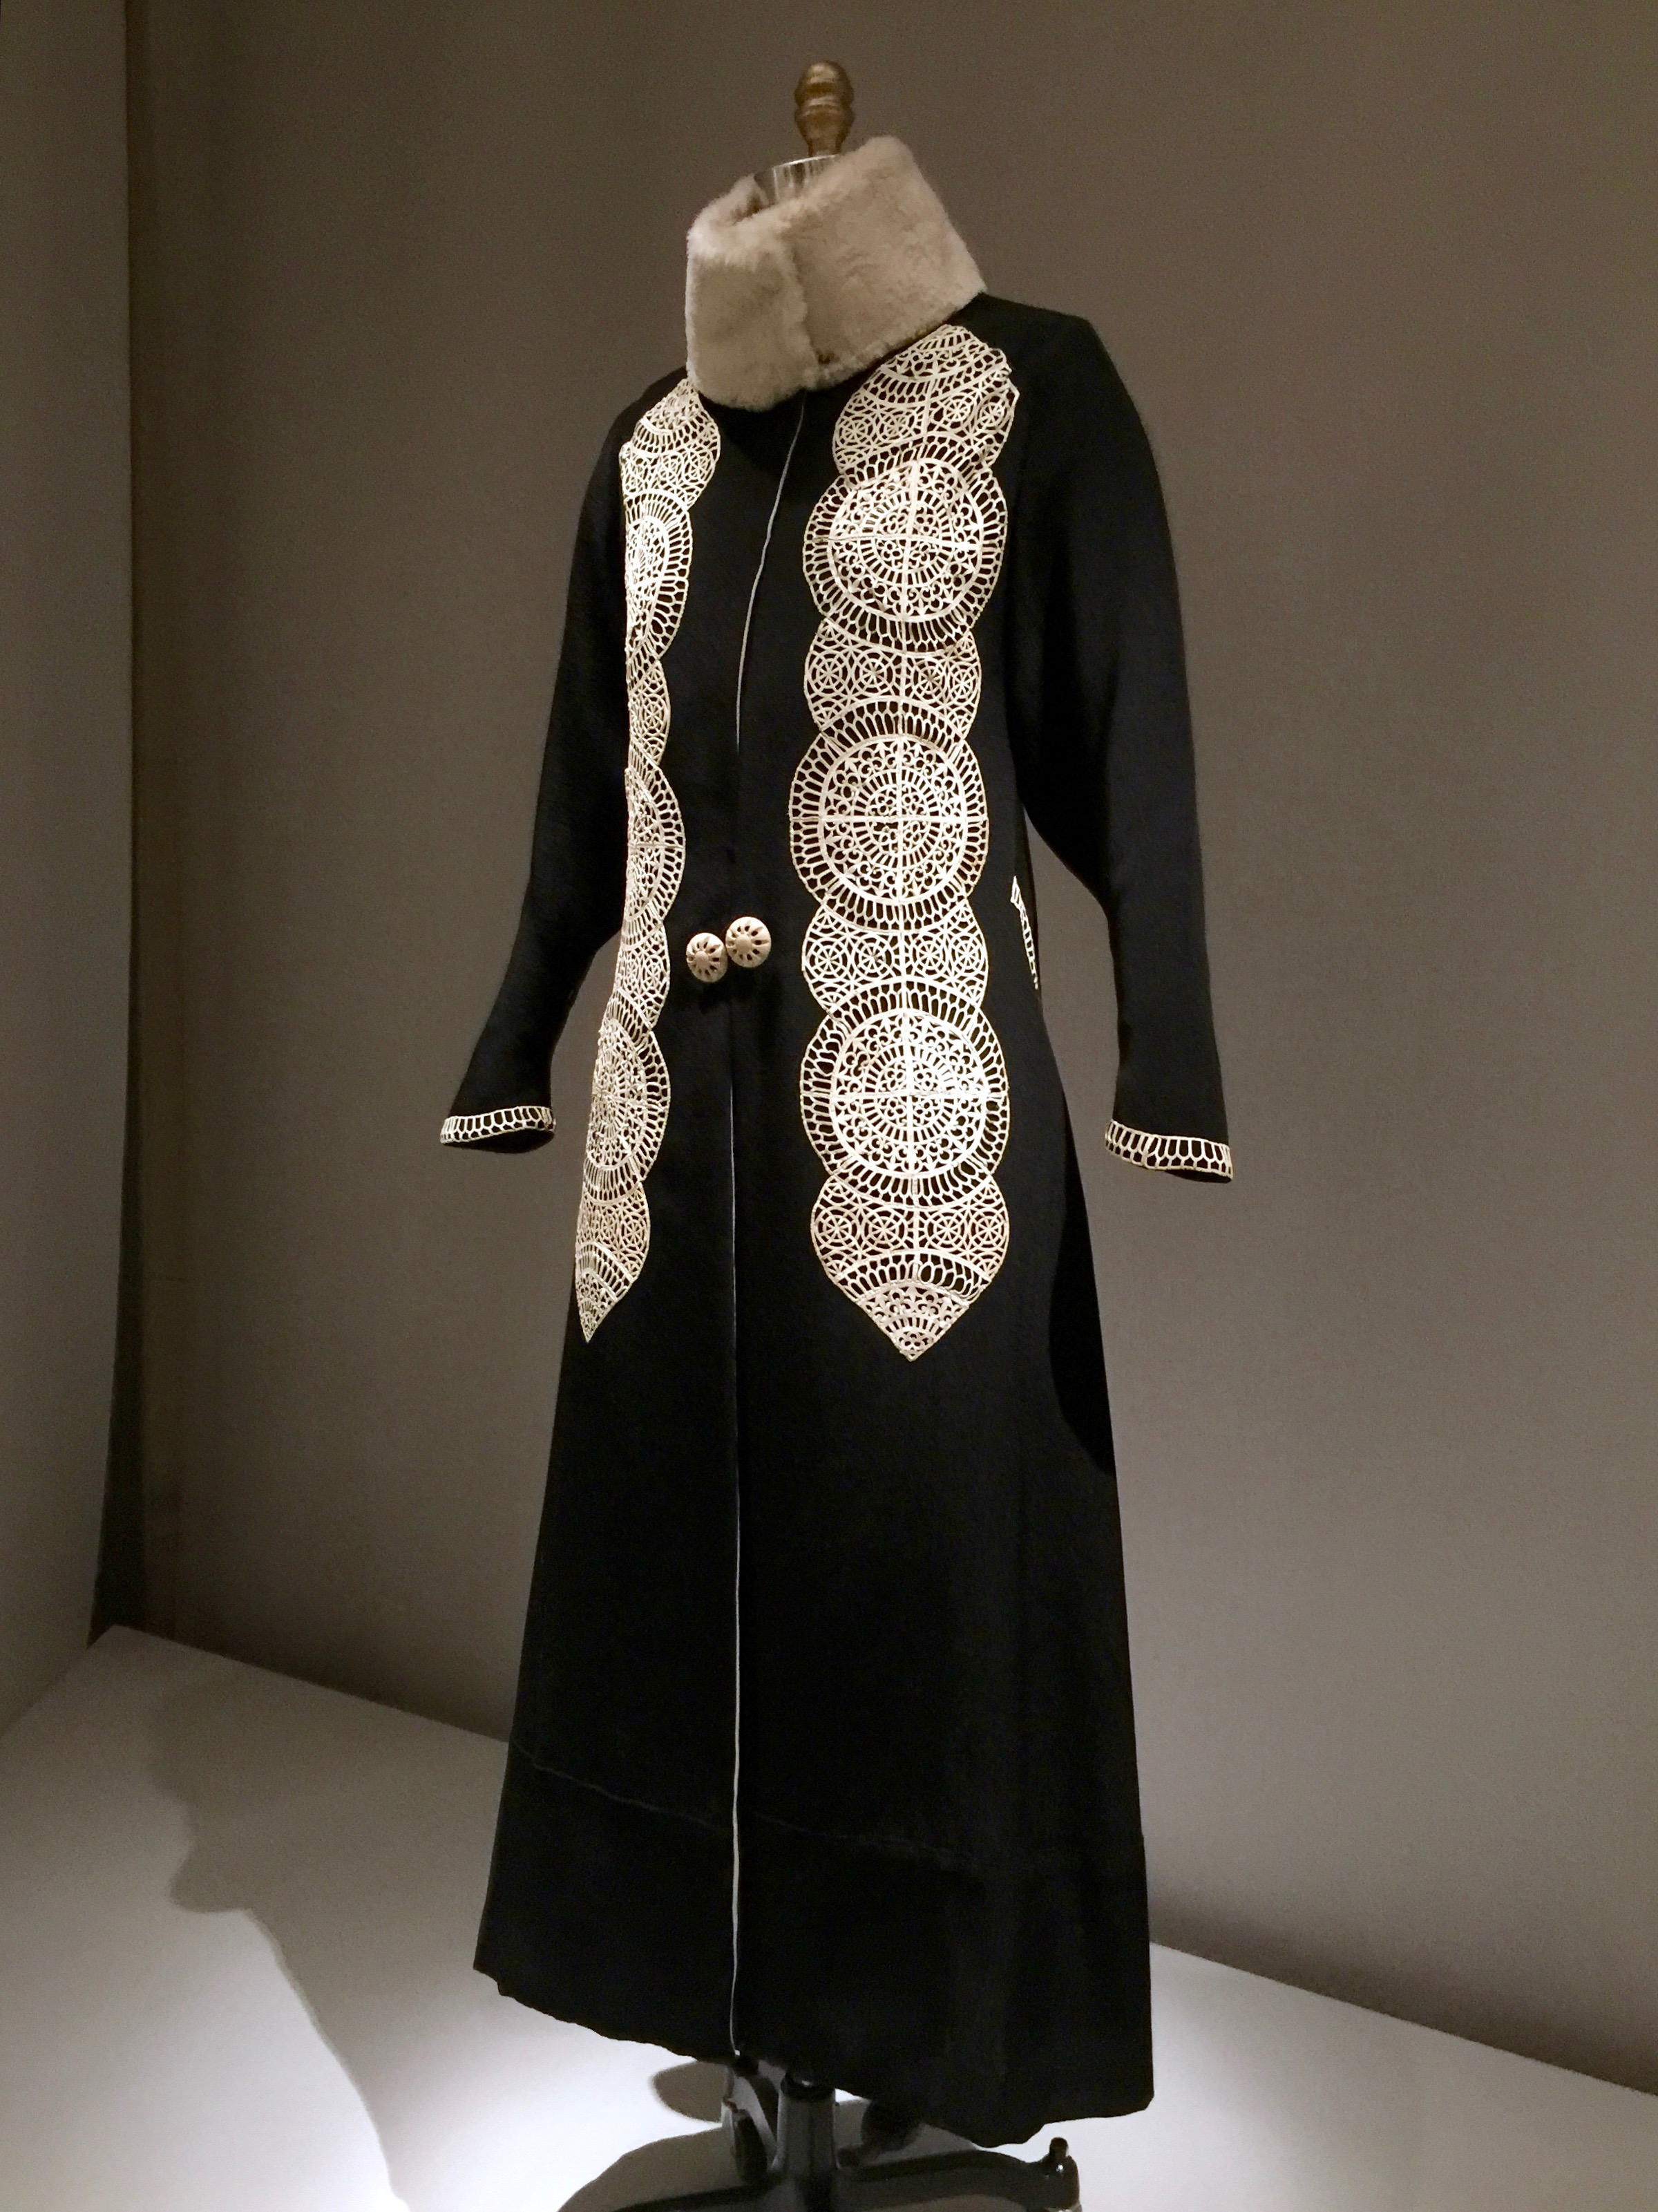 Paul Poiret COAT, Ca. 1919, haute couture  Machine-sewn black wool rep with white fur collar, hand-appliquéd with white kidskin cutwork, hand-sewn hem and silk binding